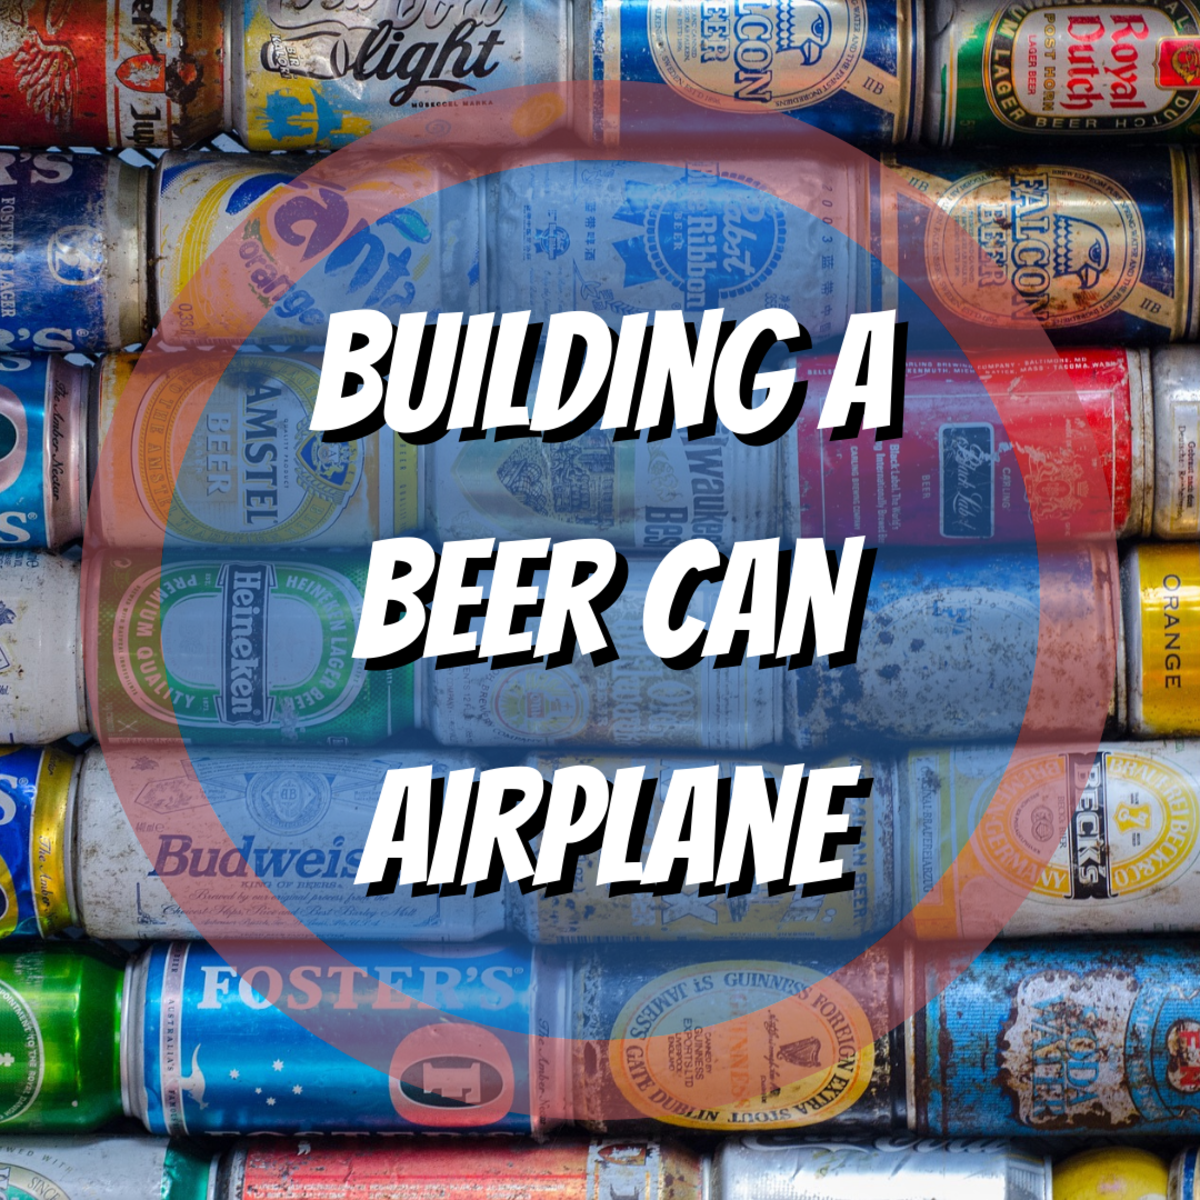 This article provides easy-to-follow, step-by-step instructions for how to build an inexpensive toy airplane out of beer cans.